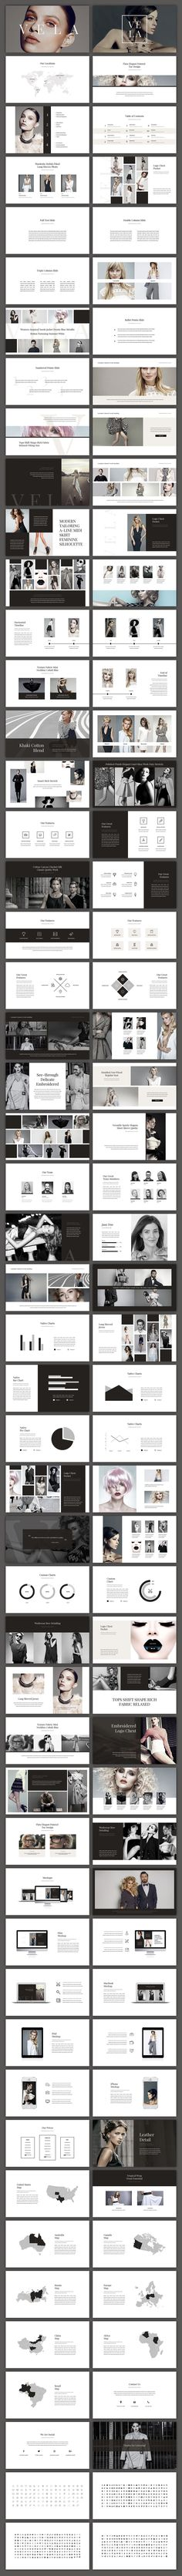 An elegant fashion business slide presentation template. Great for pitch decks, annual reports, look books, and other presentations. Includes tons of layouts with classic neutral color themes.